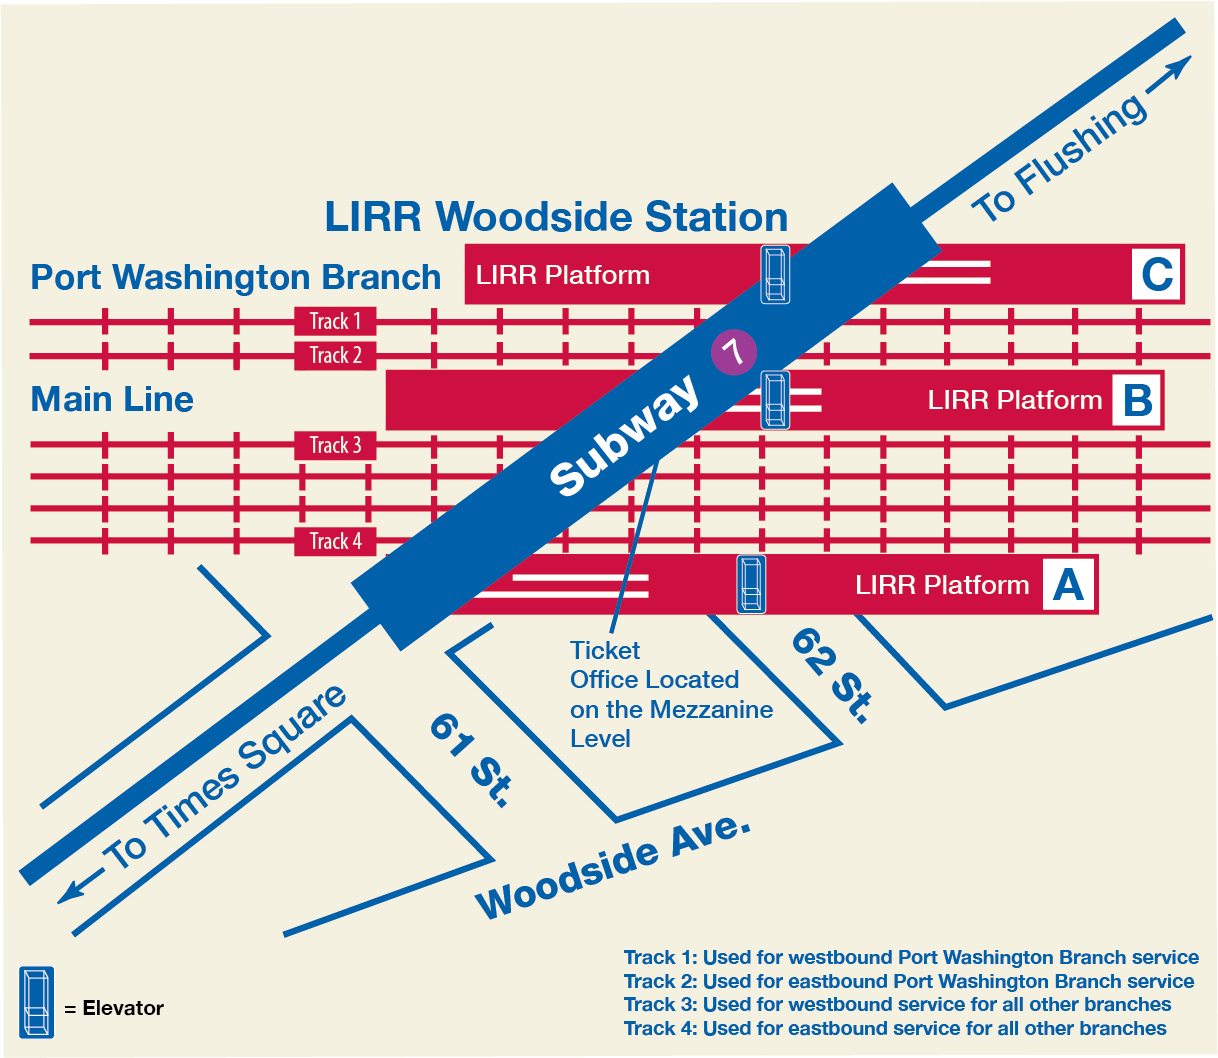 Mta Subway Map Elevators.Mta Lirr Woodside